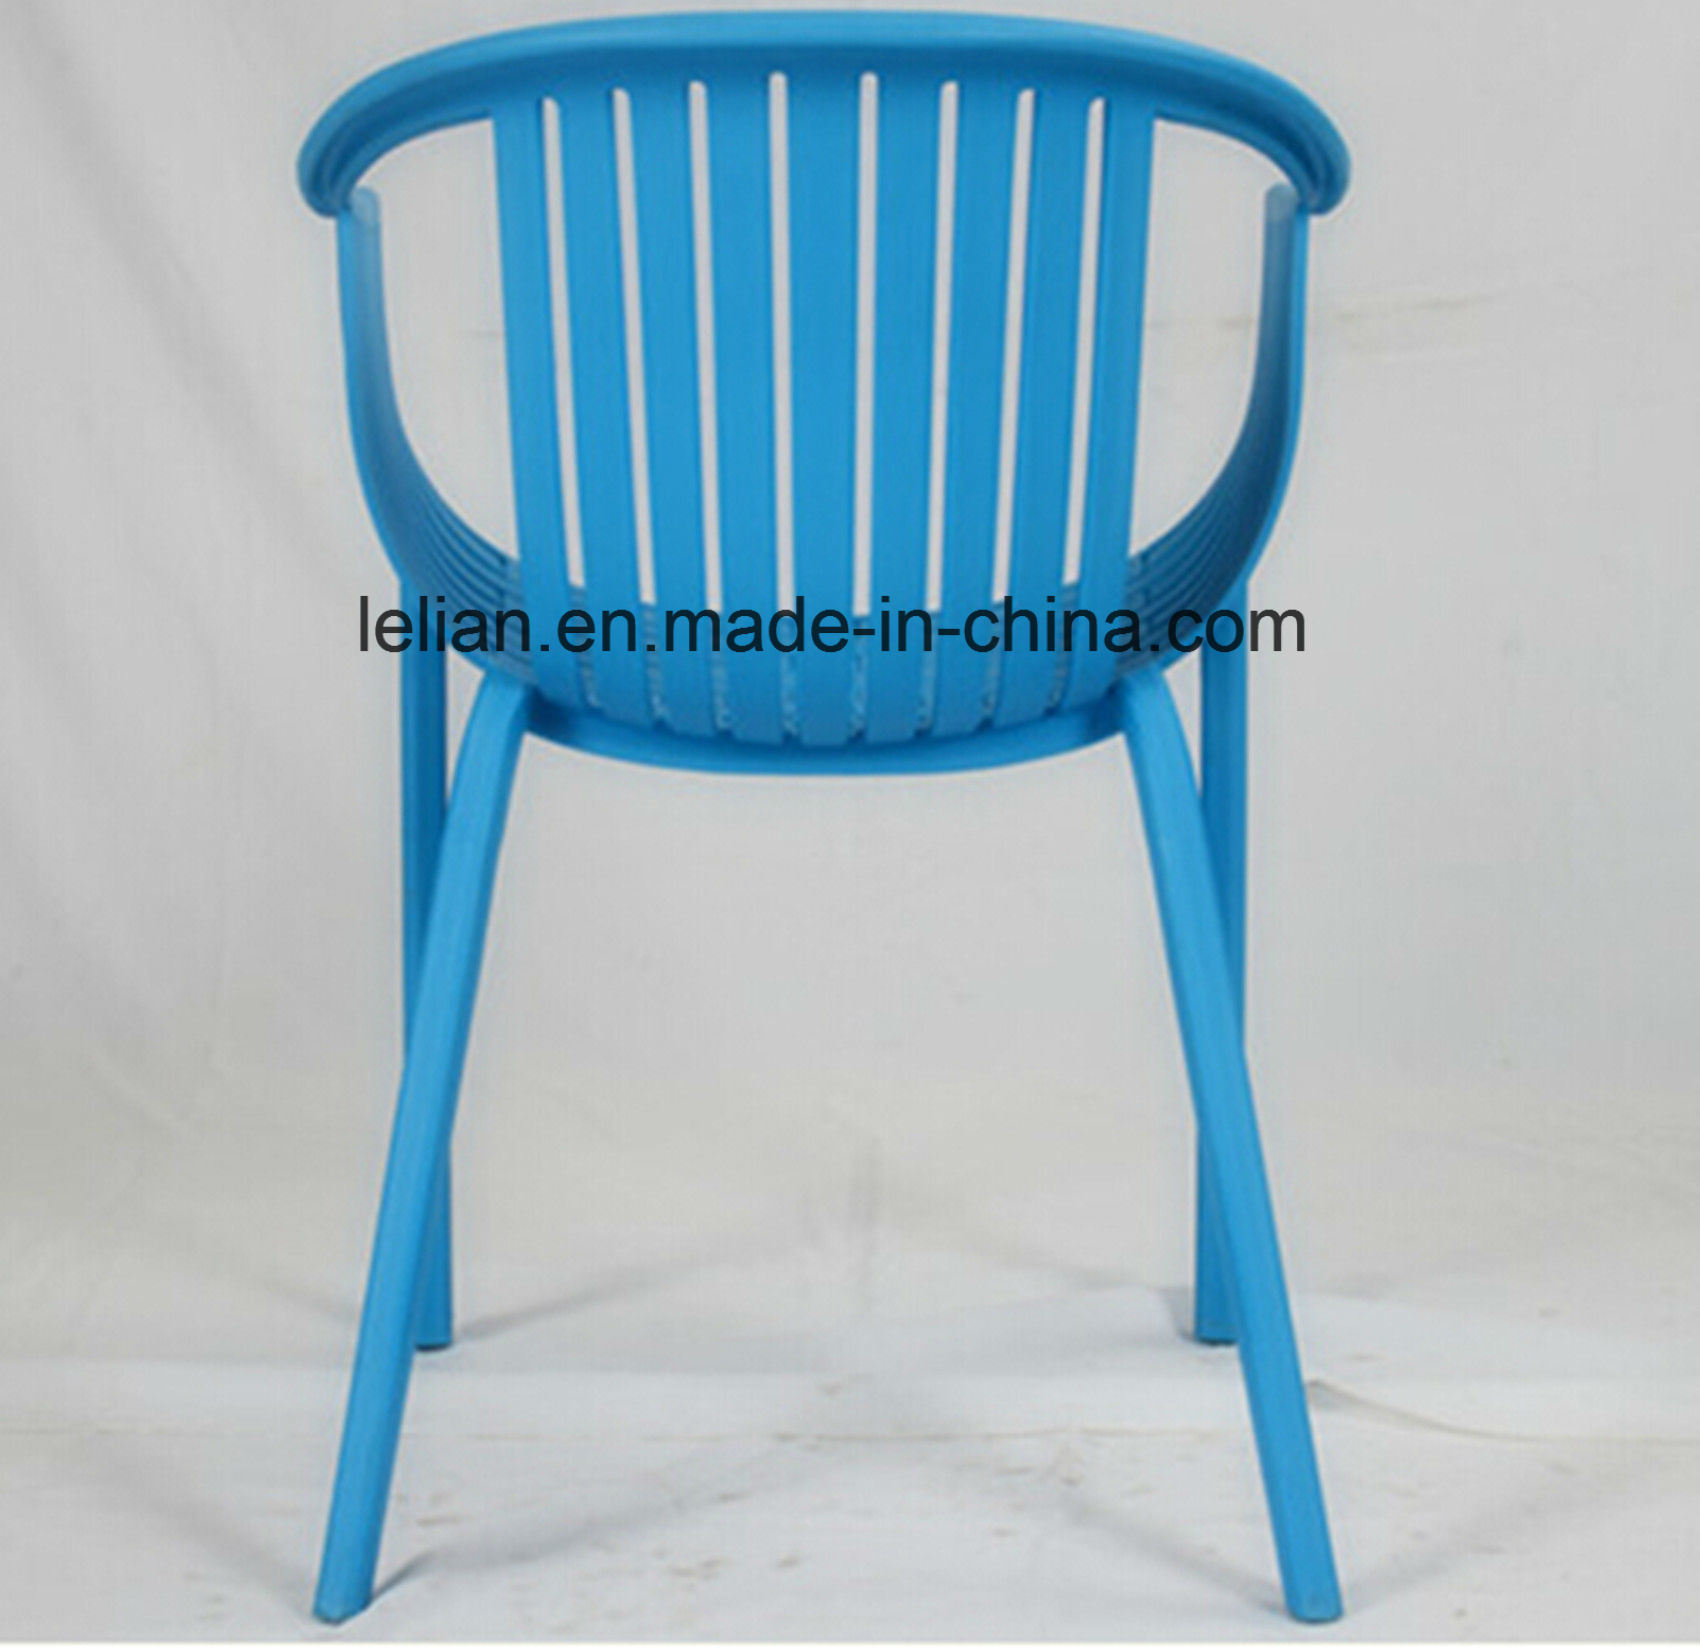 Plastic PP Living Room Dining Chair, Garden Coffee Chair (LL-0067)